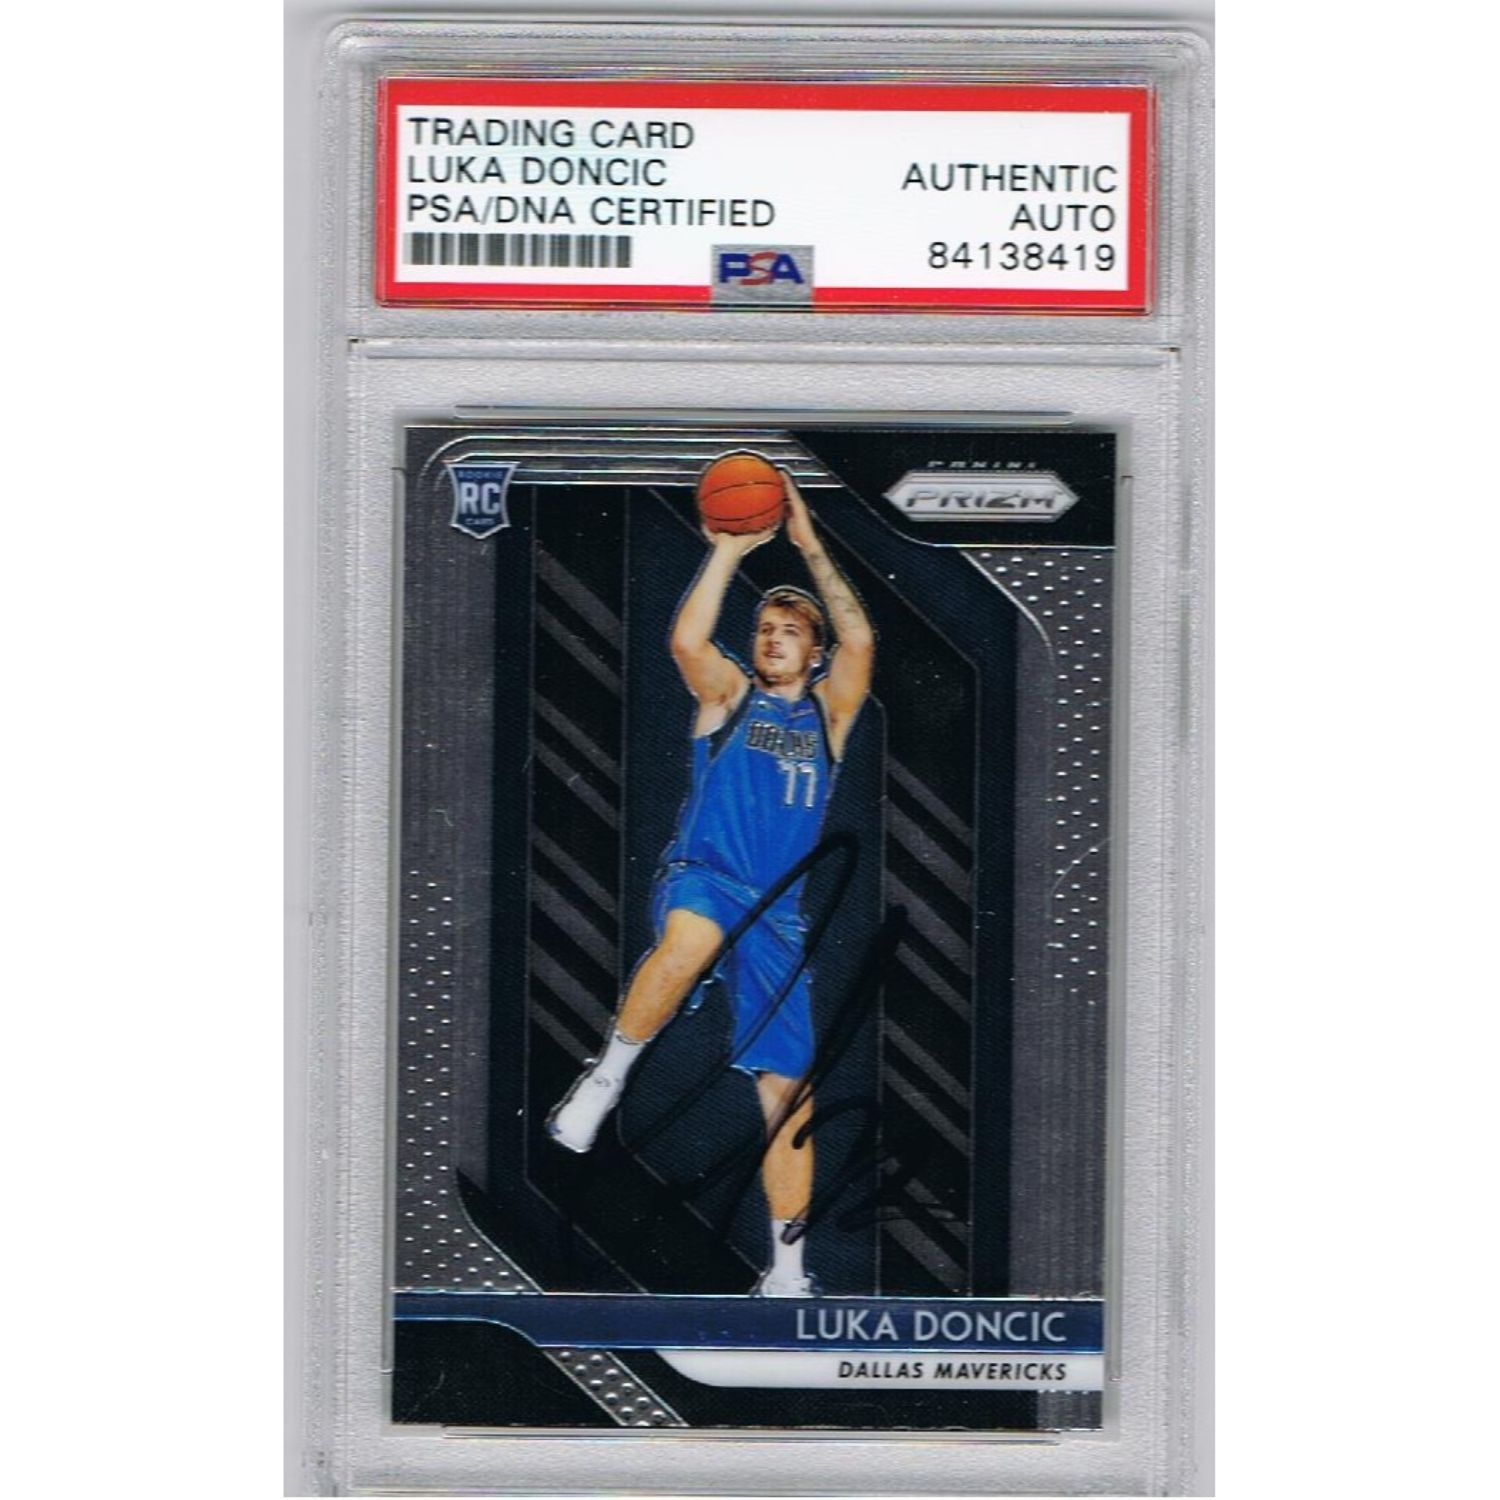 Luka Doncic Dallas Mavericks Autographed Panini Prizm Signed Basketball Rookie Trading Card RC PSA DNA